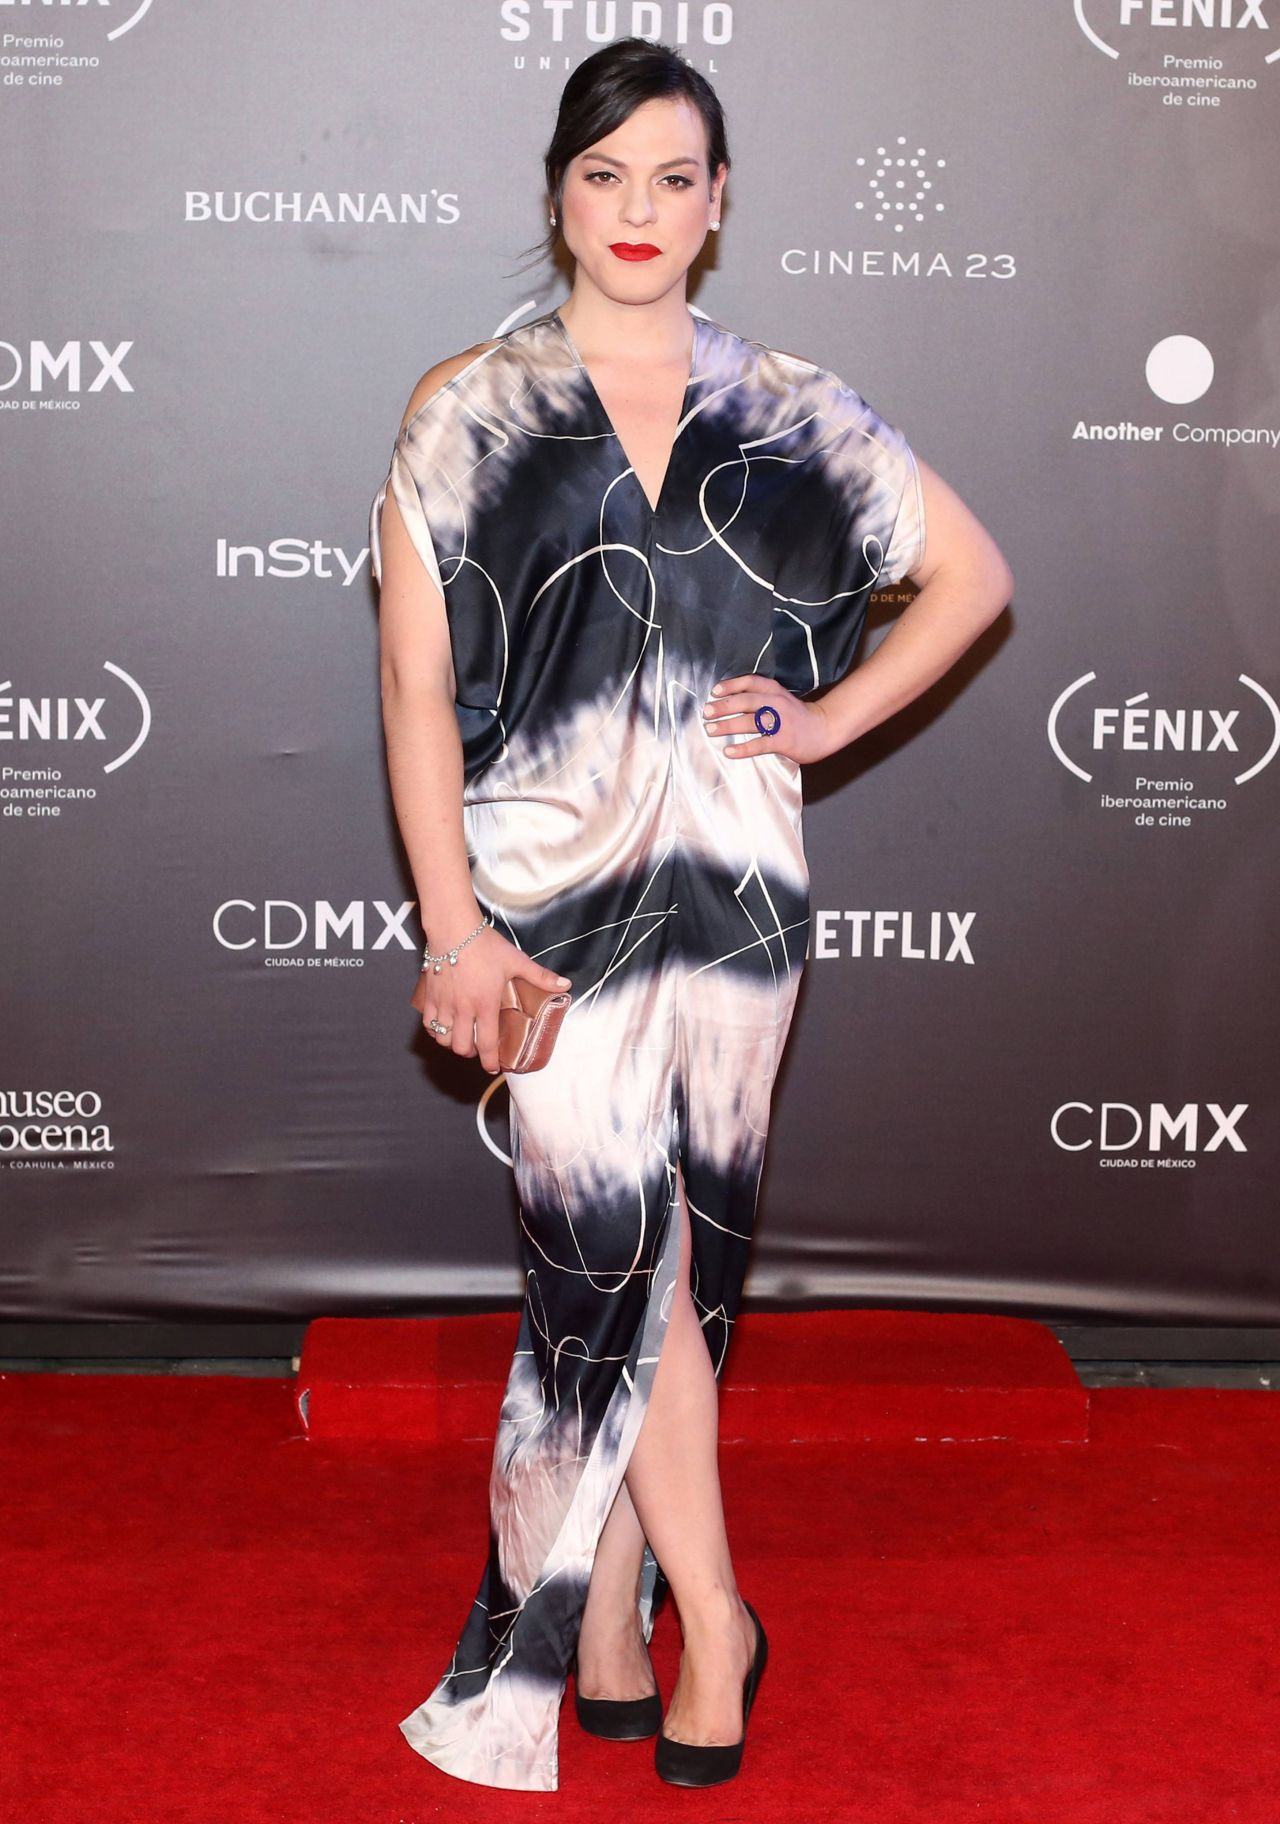 Daniela Vega Latest Photos Celebmafia